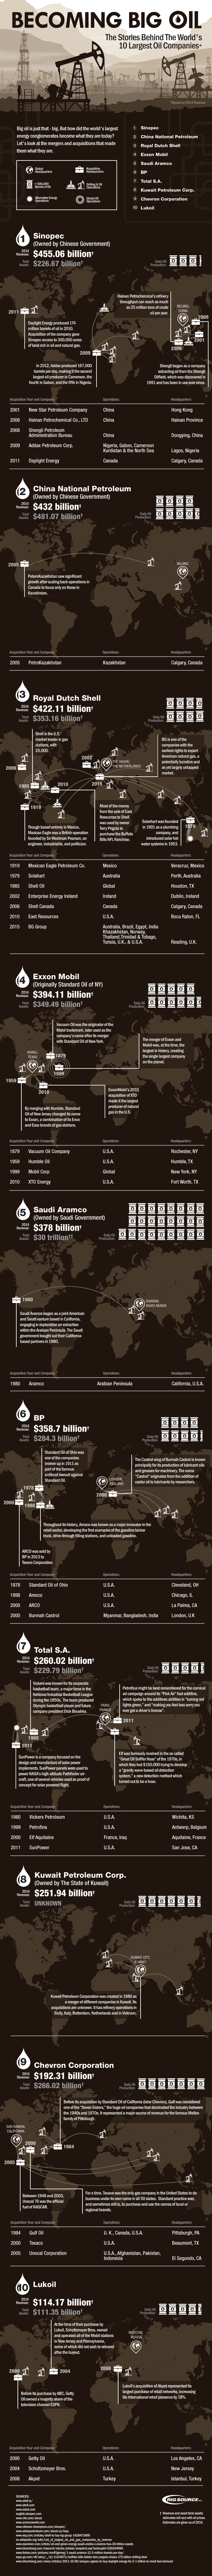 The mergers and acquisitions behind world's largest oil companies.